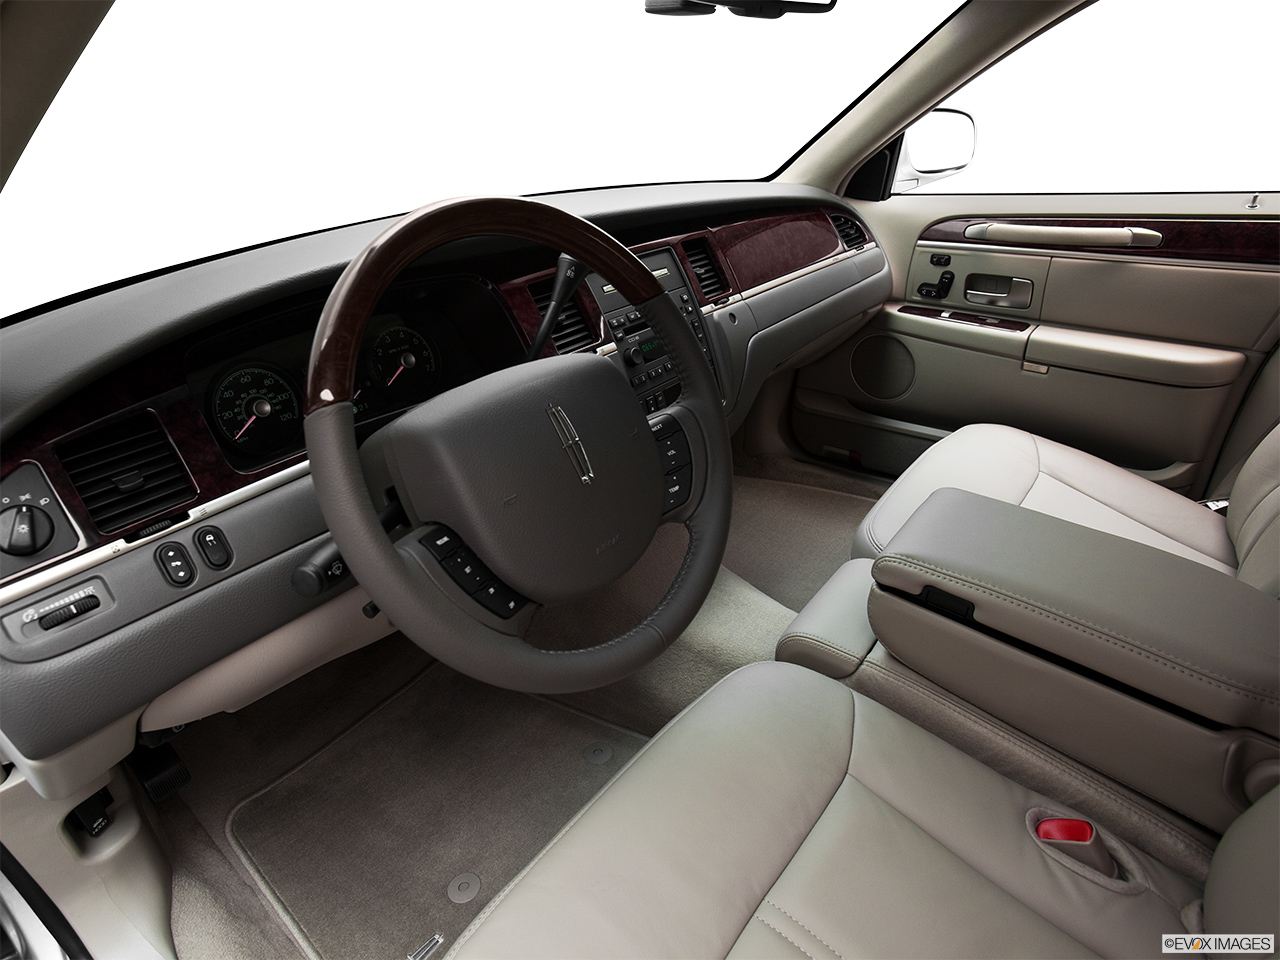 2011 Lincoln Town Car Signature Limited Interior Hero (driver's side).